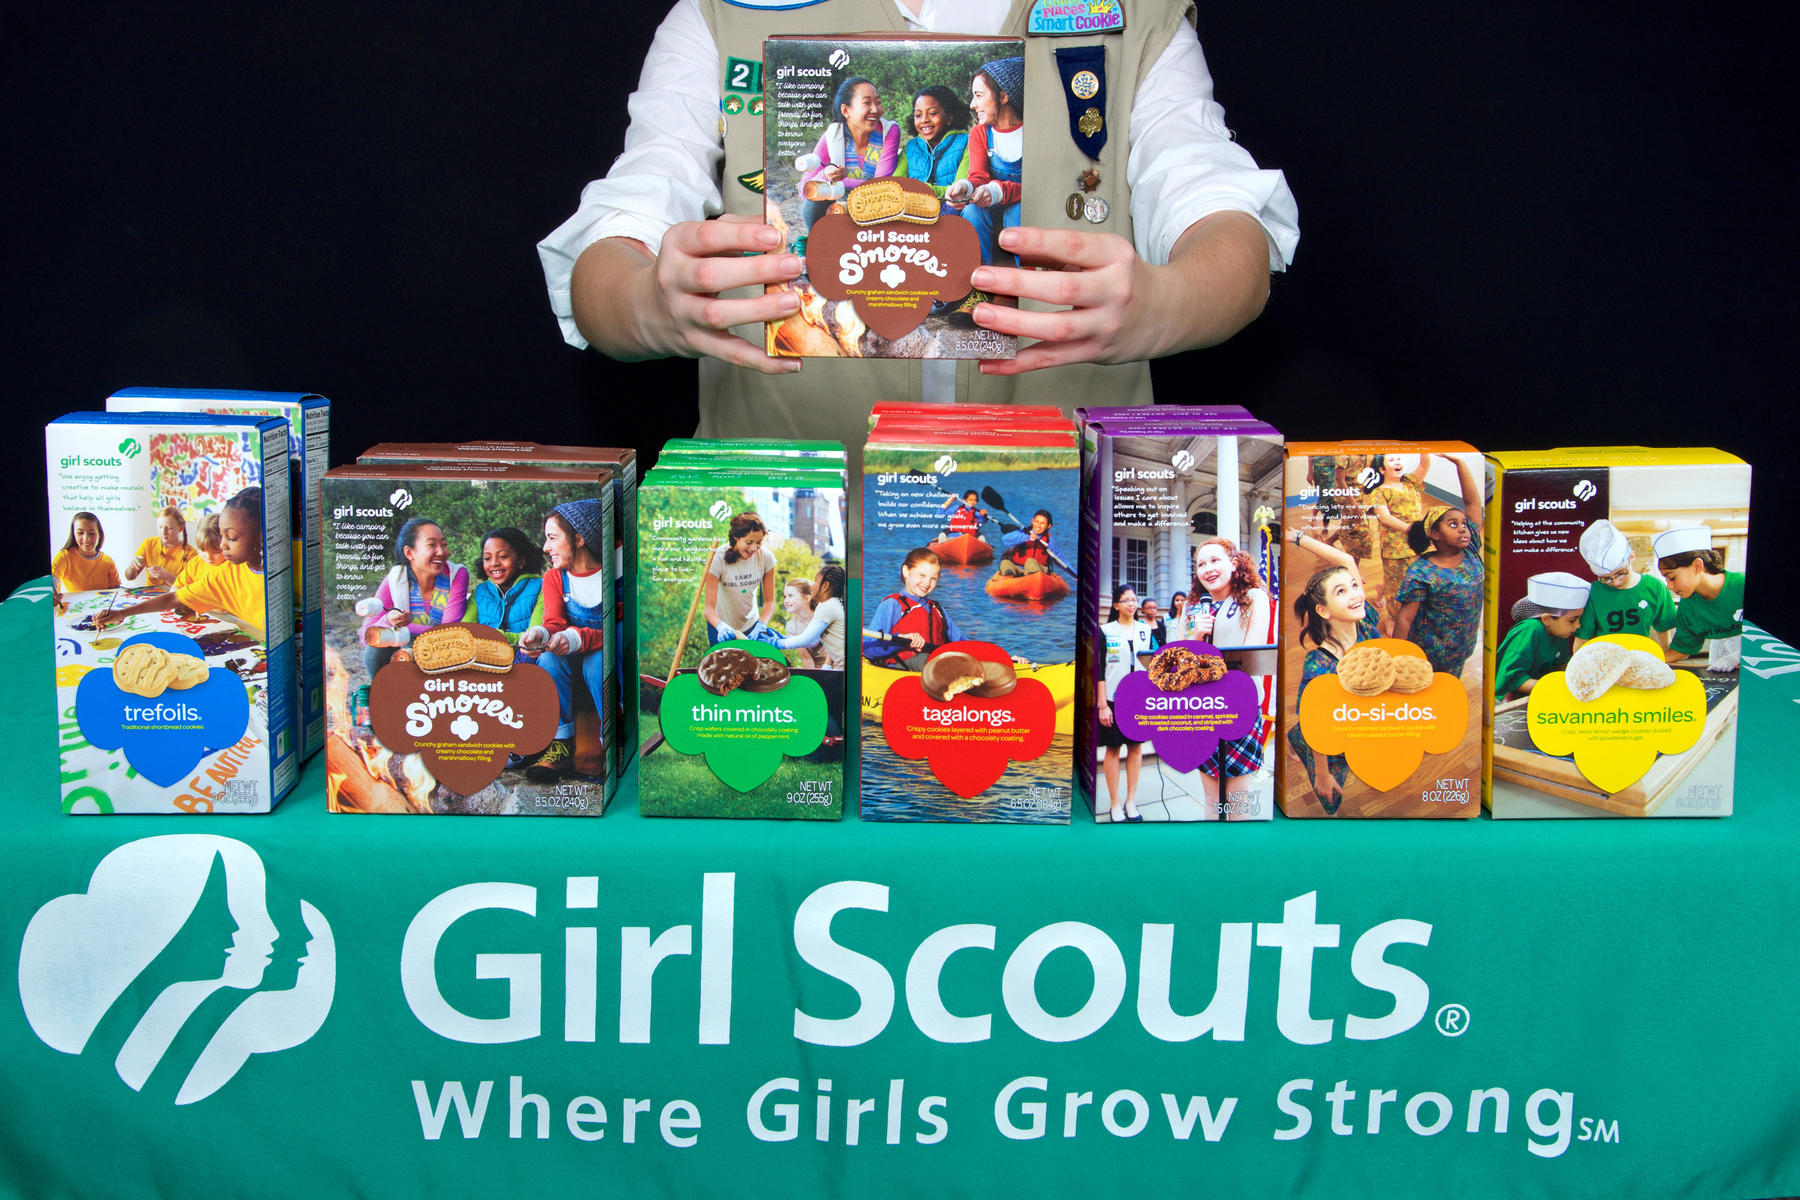 Girl Scout Sells Cookies Outside Cannabis Dispensary